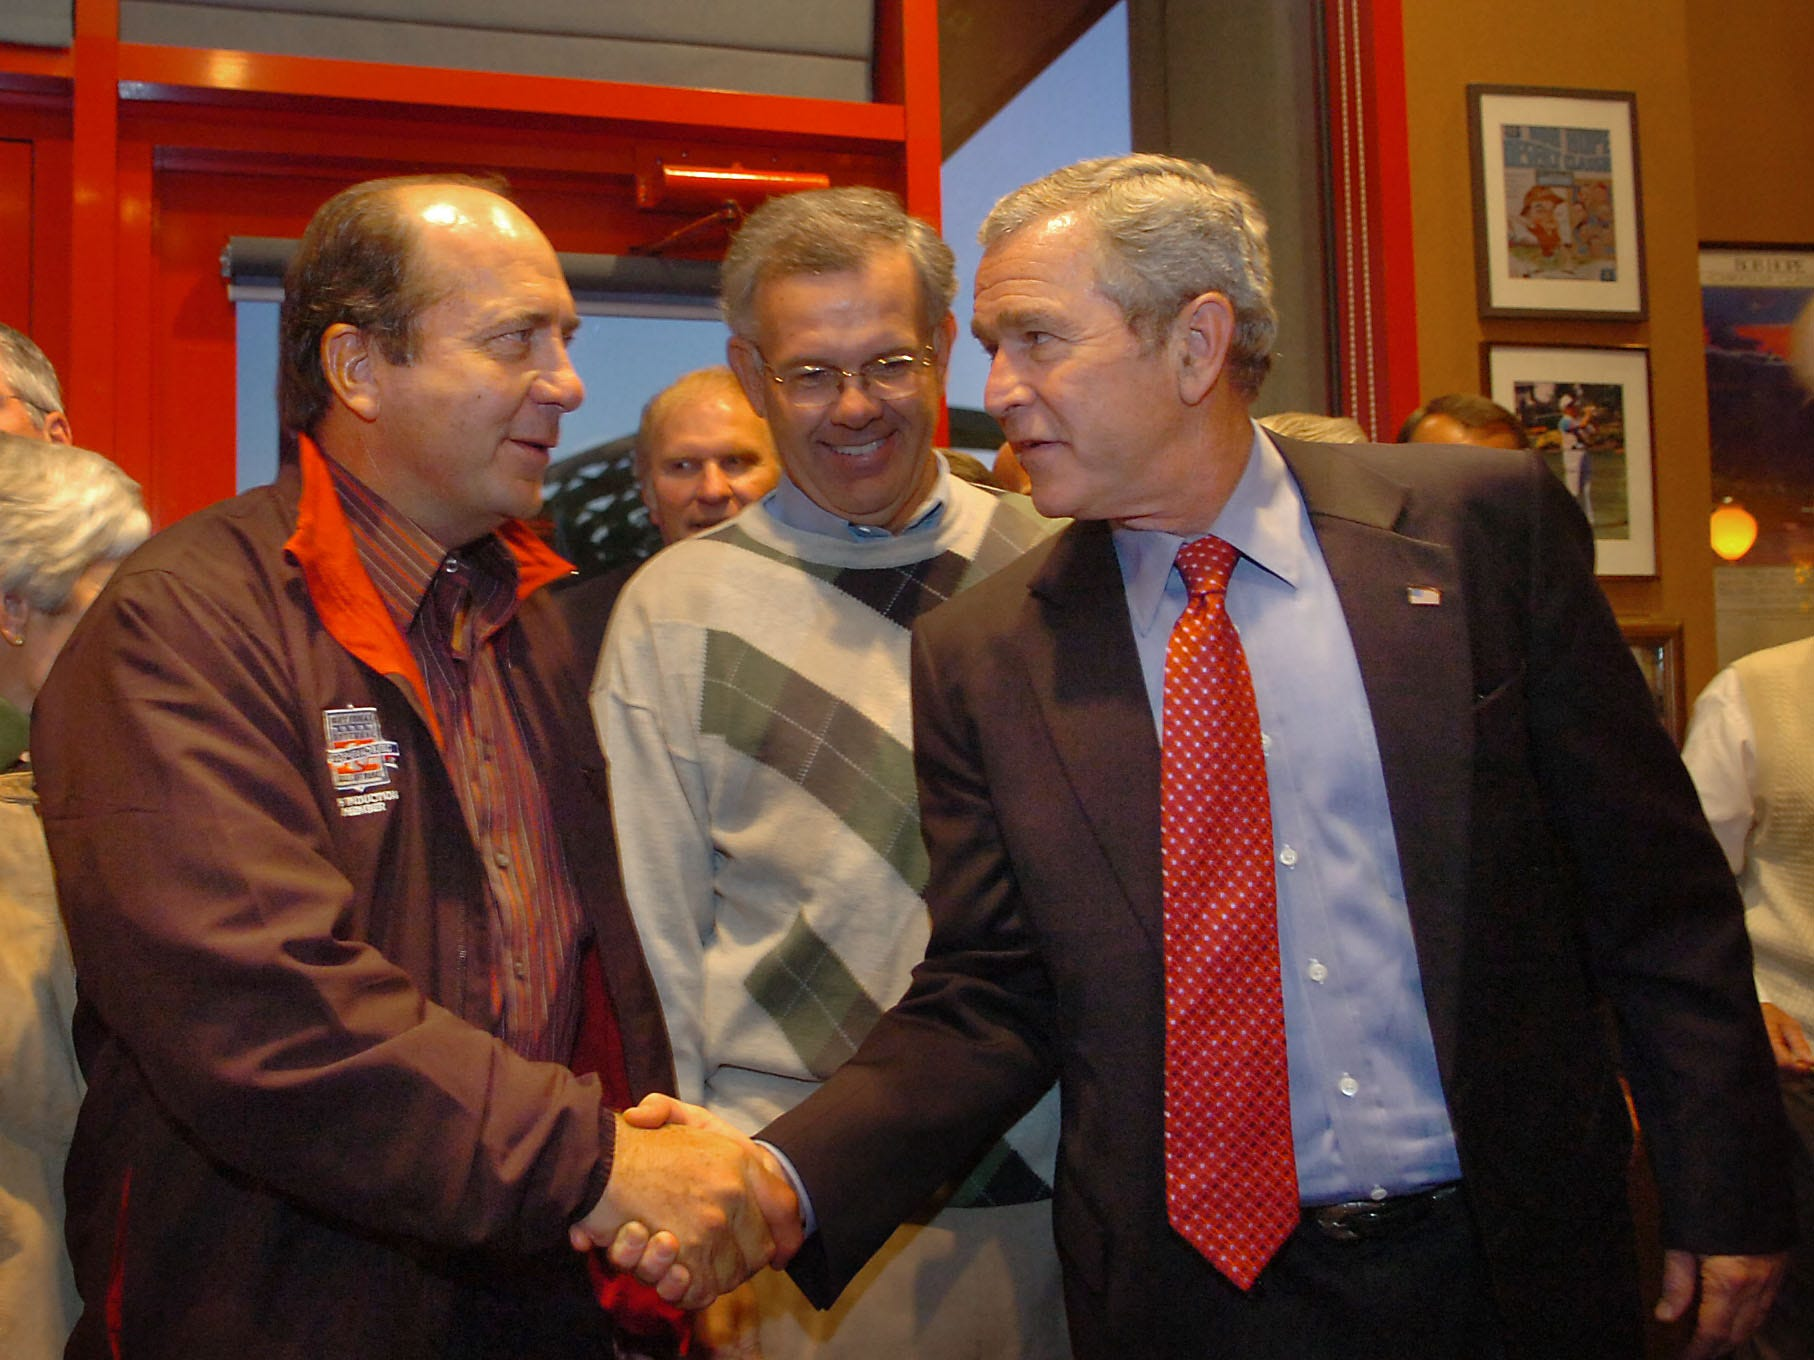 BUSH29  OCTOBER 29, 2007  President Bush shakes hands with former Reds player Johnny Bench at Bench's 60th birthday party at the Montgomery Inn Boathouse during Bush's visit to Cincinnati this afternoon.  Bush is in town for a fundraiser at Bob Castellini's Hyde Park home for Congressman Steve Chabot.  The Enquirer/Leigh Taylor